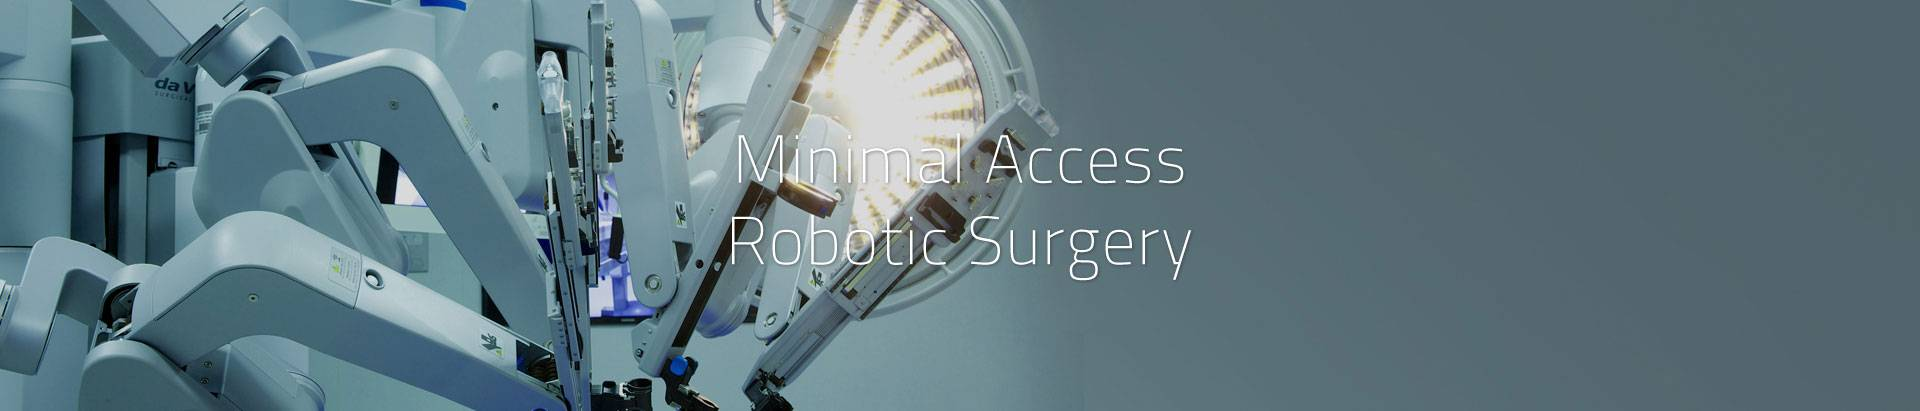 Slider-minimal-acess-robotic-surgery-01